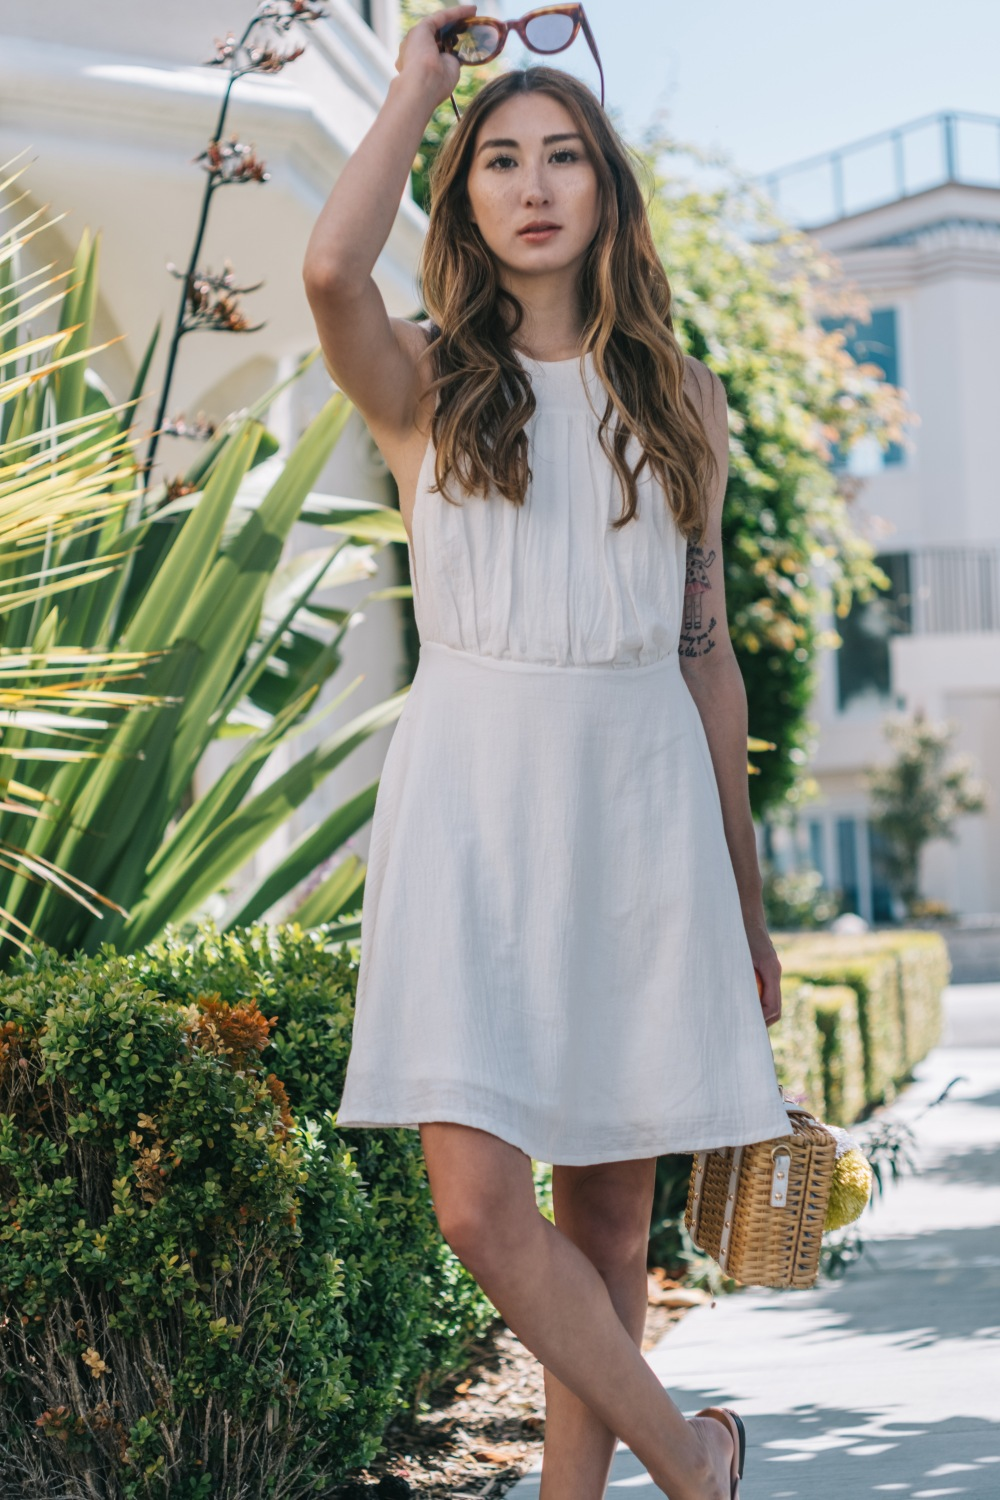 Just Peachy Alyssa Nicole Claire Dress San Francisco Marina District 11